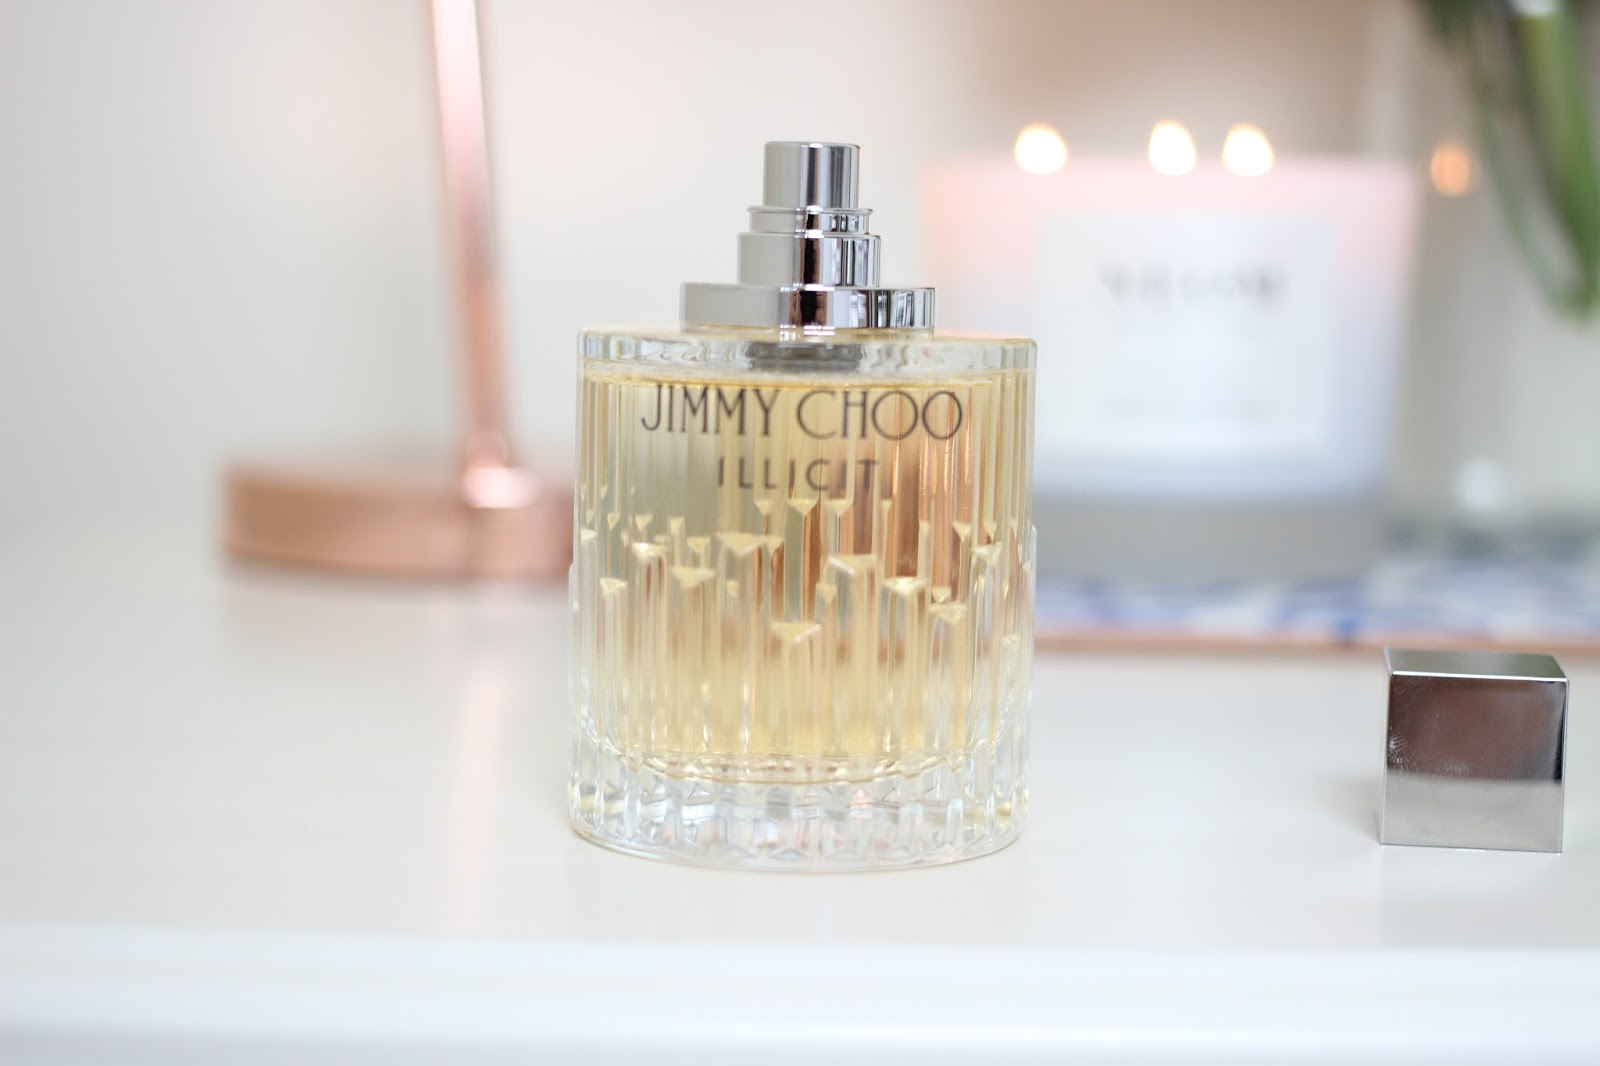 317859700b4 Jimmy Choo Illicit - Fashion Mumblr